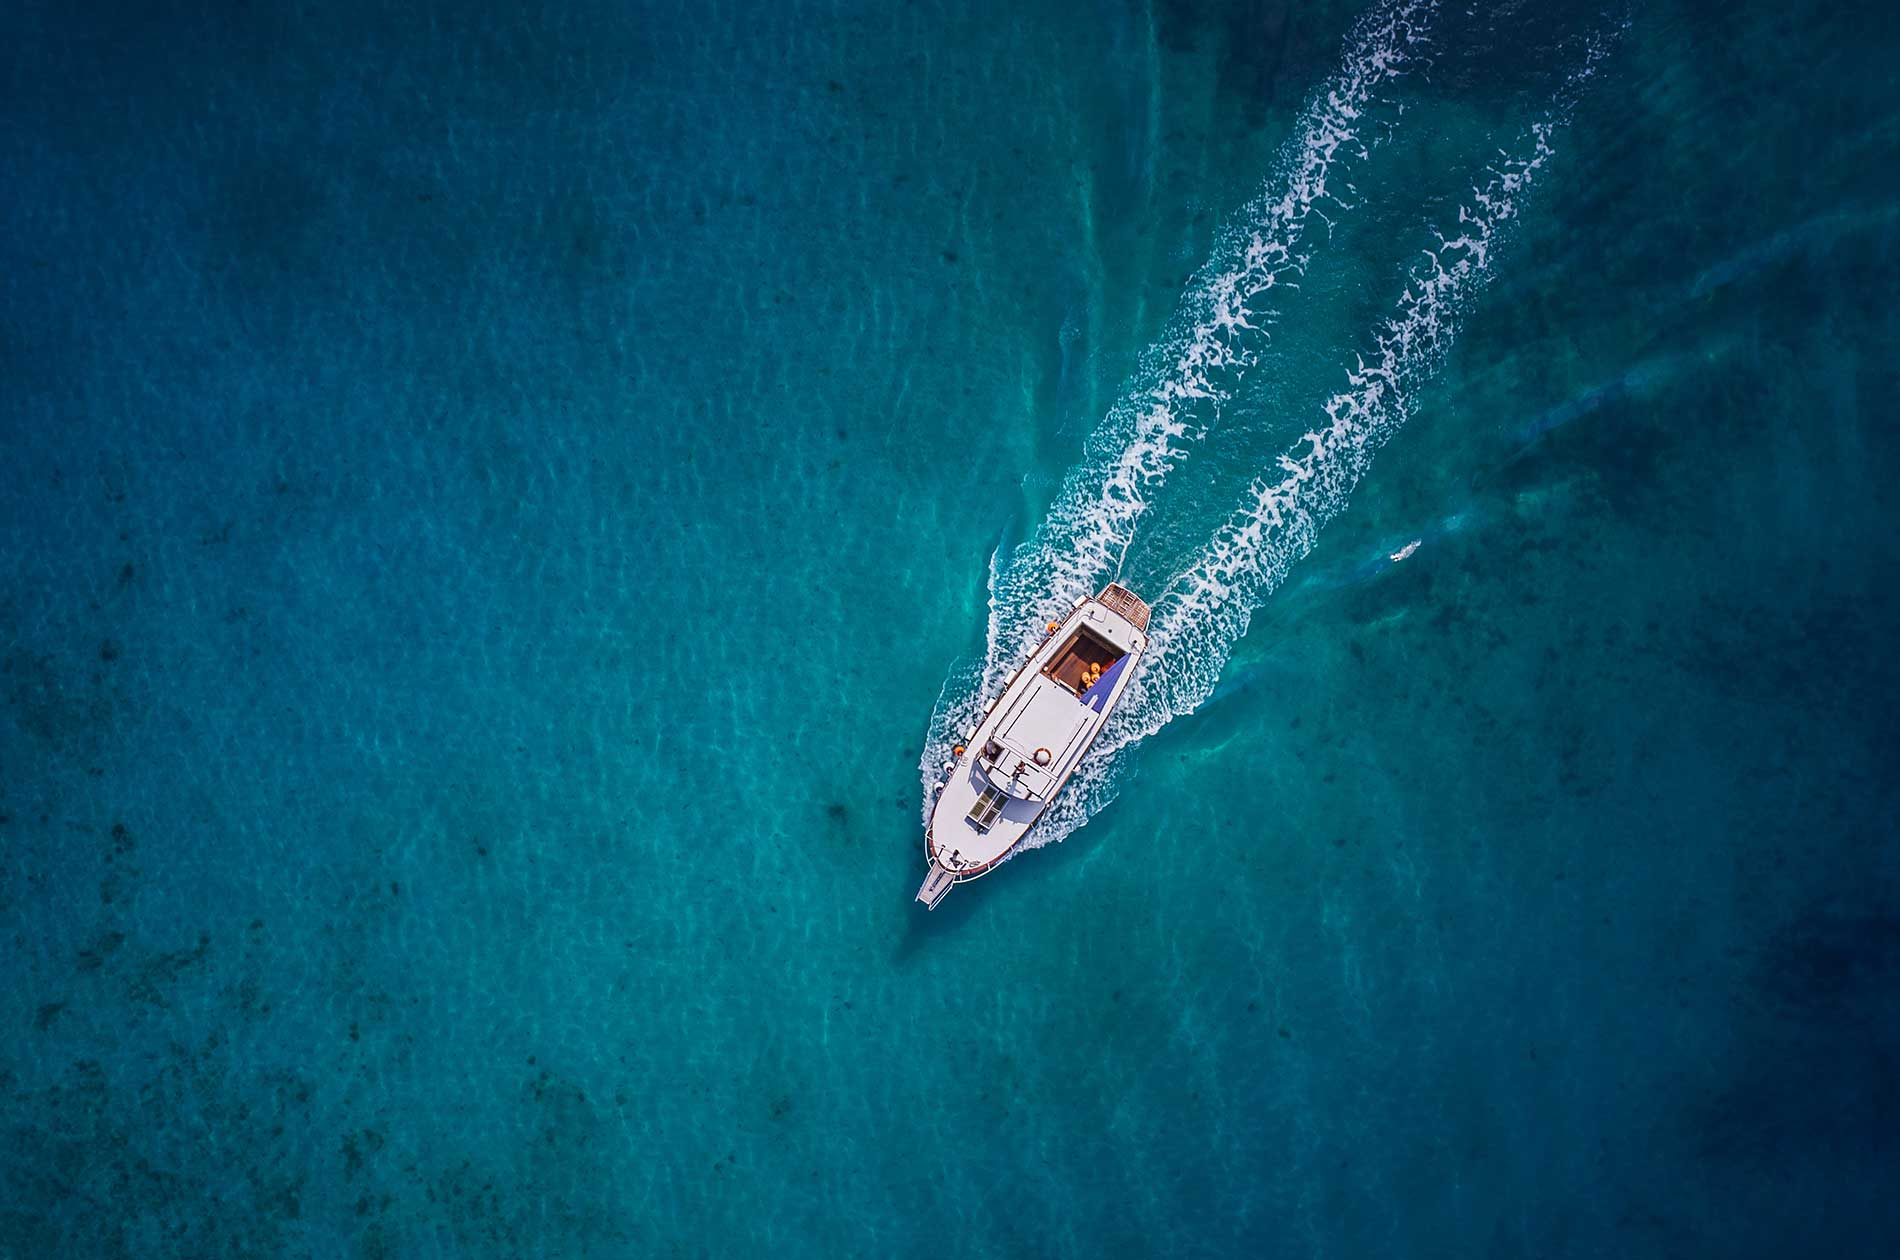 A speedboat on the water